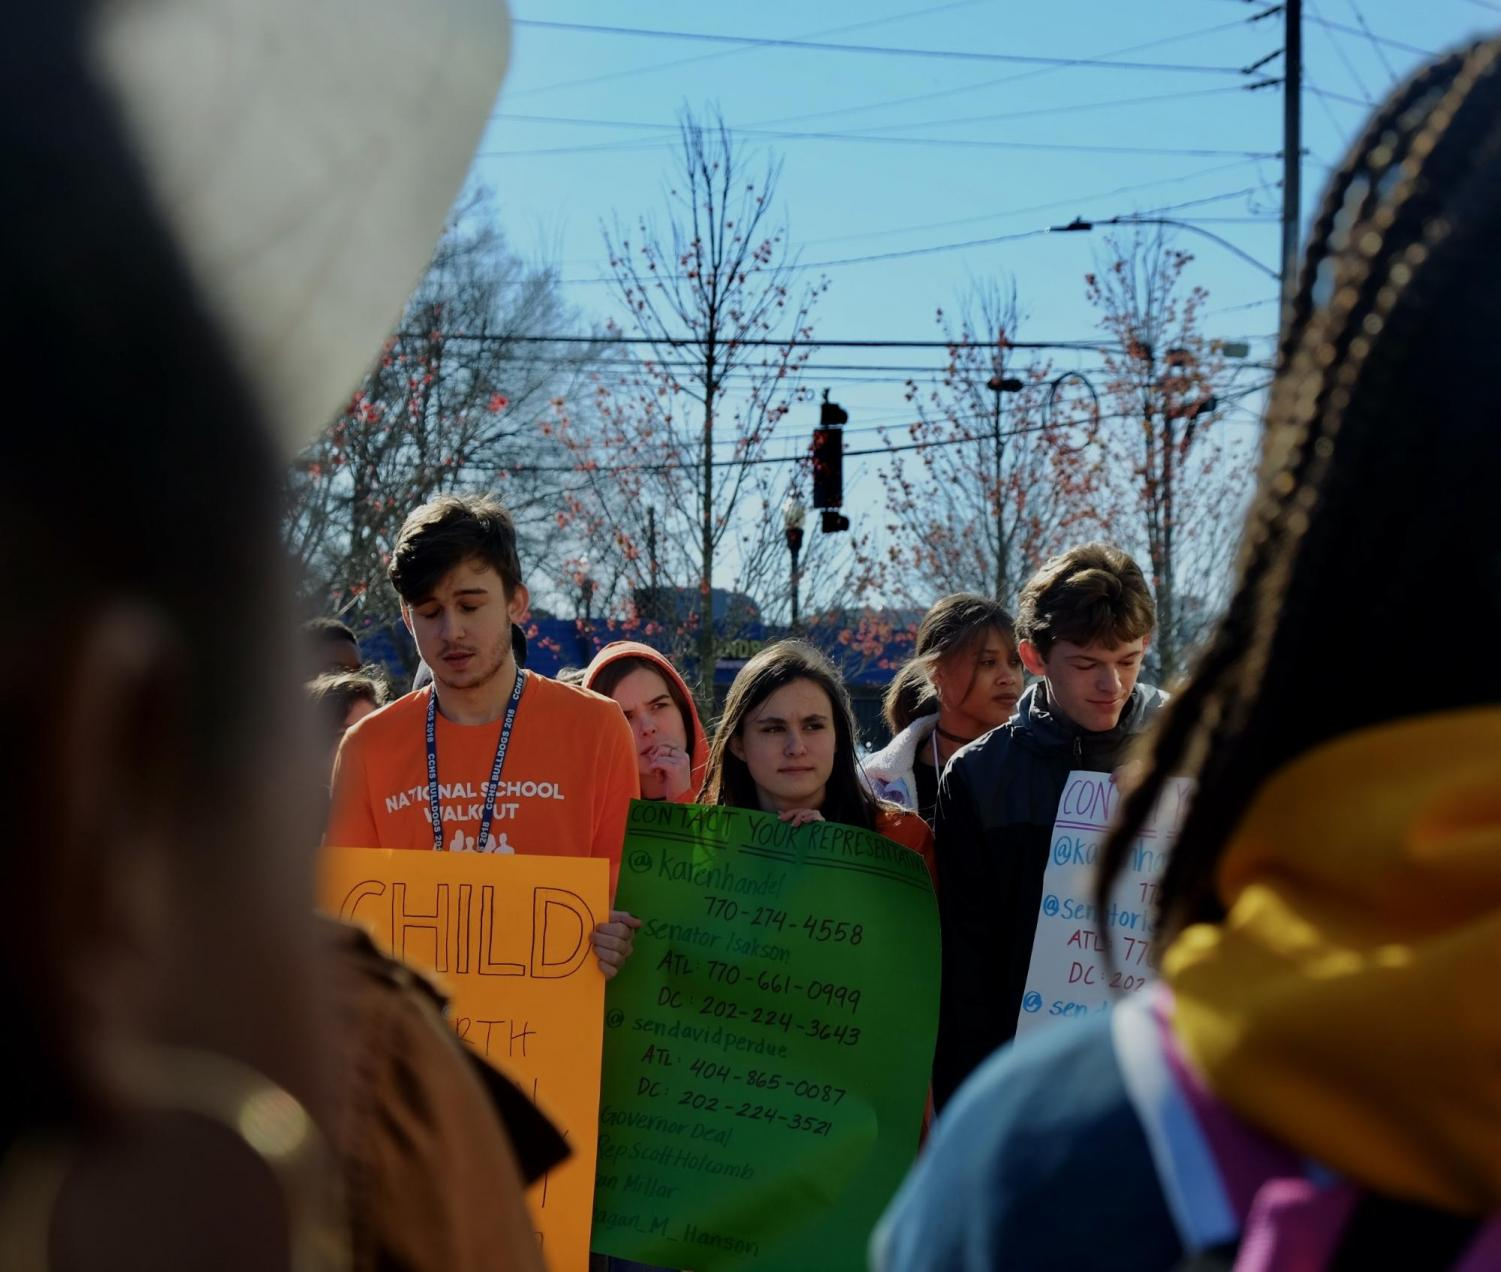 A group of Chamblee students attend a walkout protest.